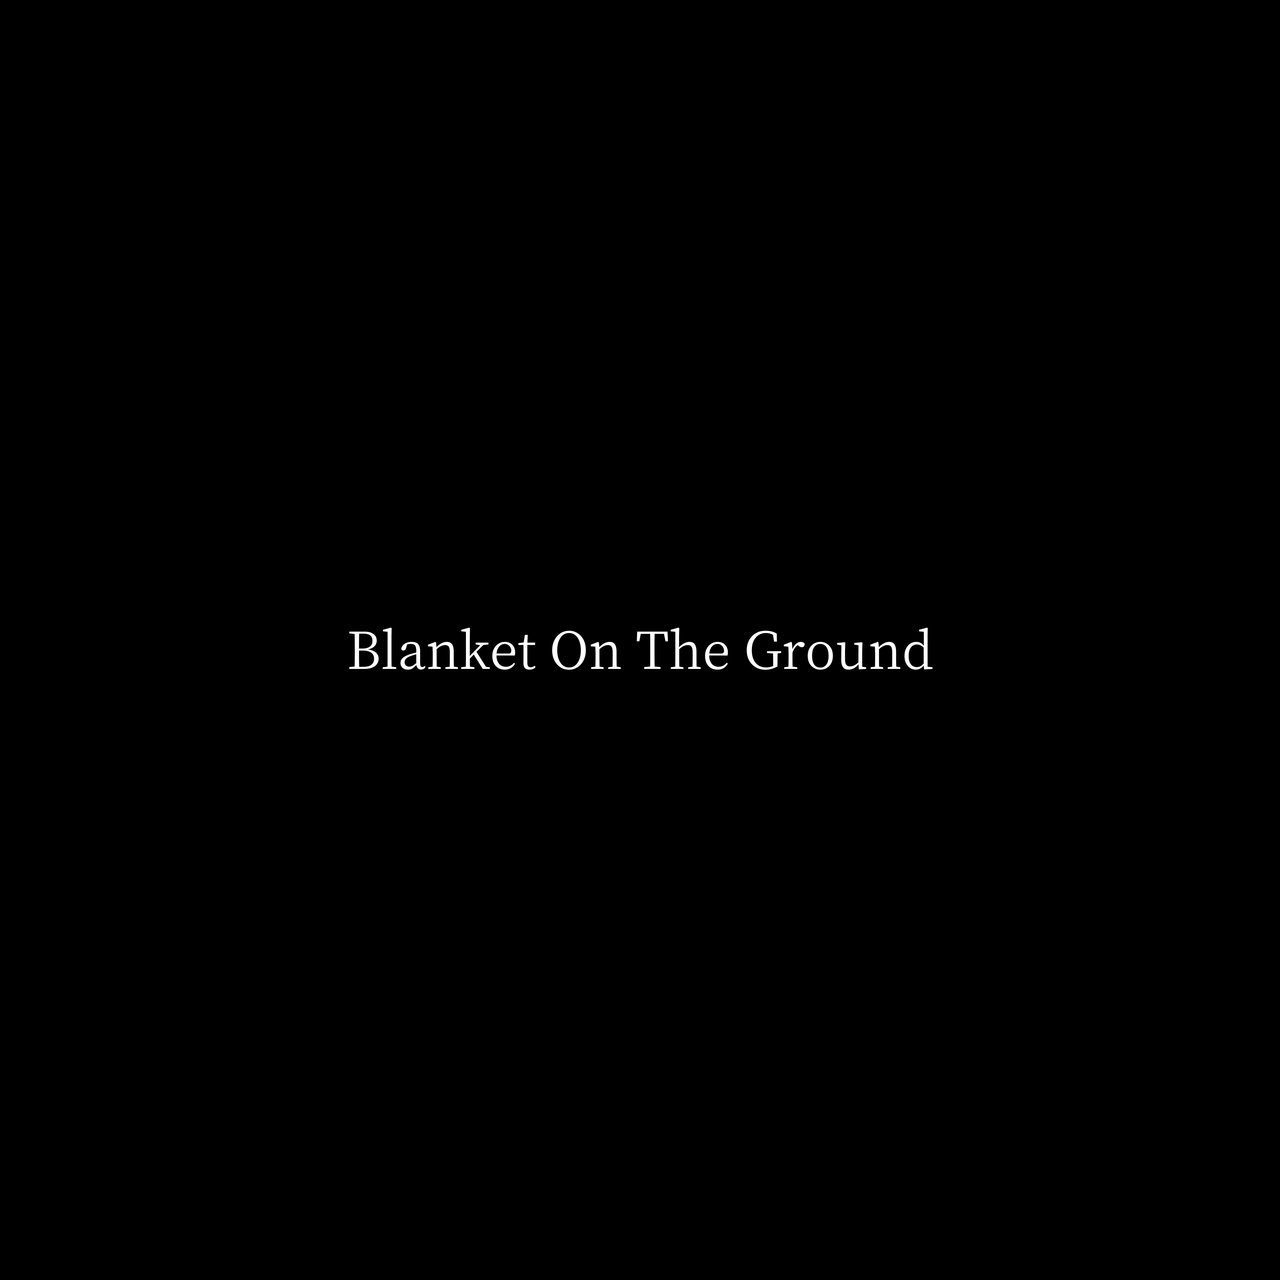 Blanket On The Ground